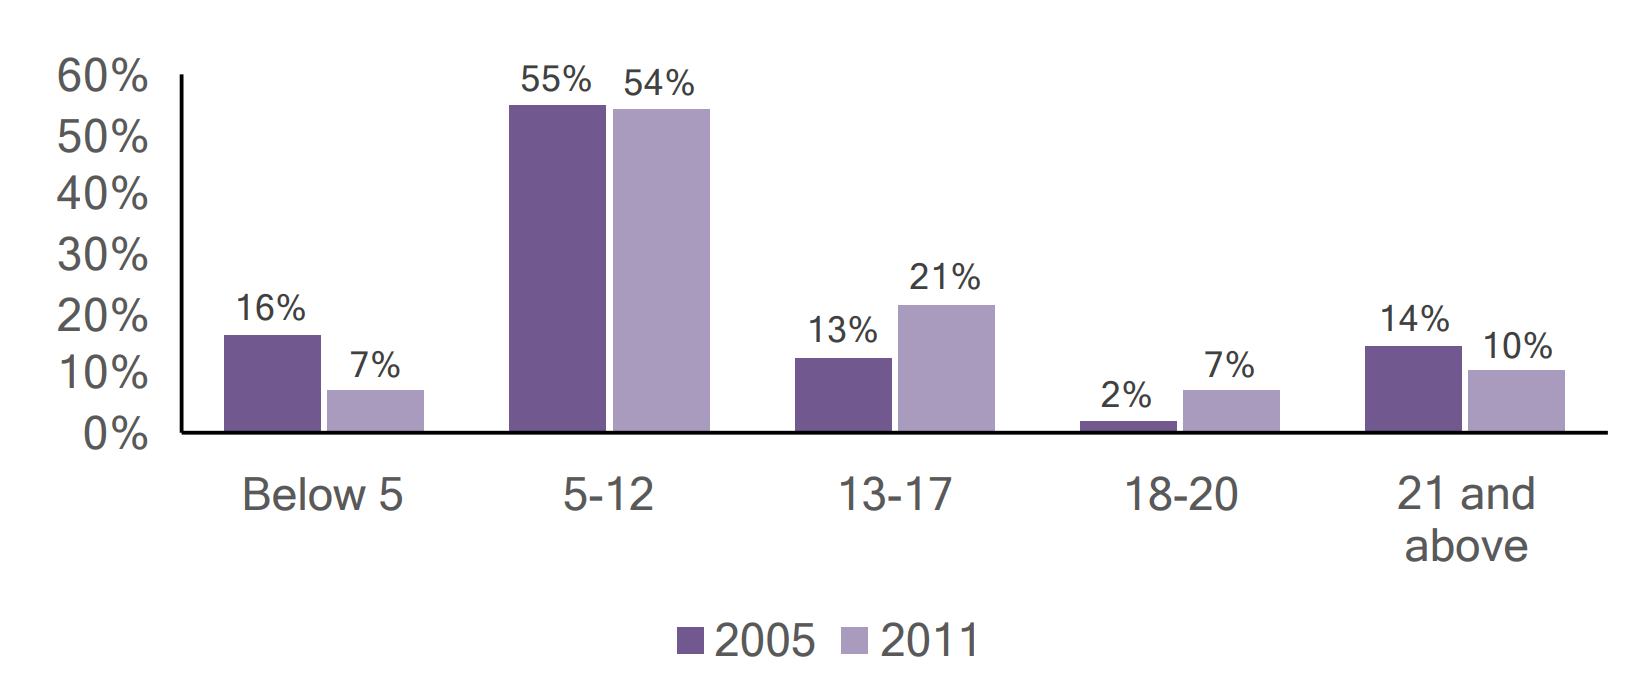 Bar graph of individuals with autism in Lycoming County by age, comparing 2005 and 2011 data.